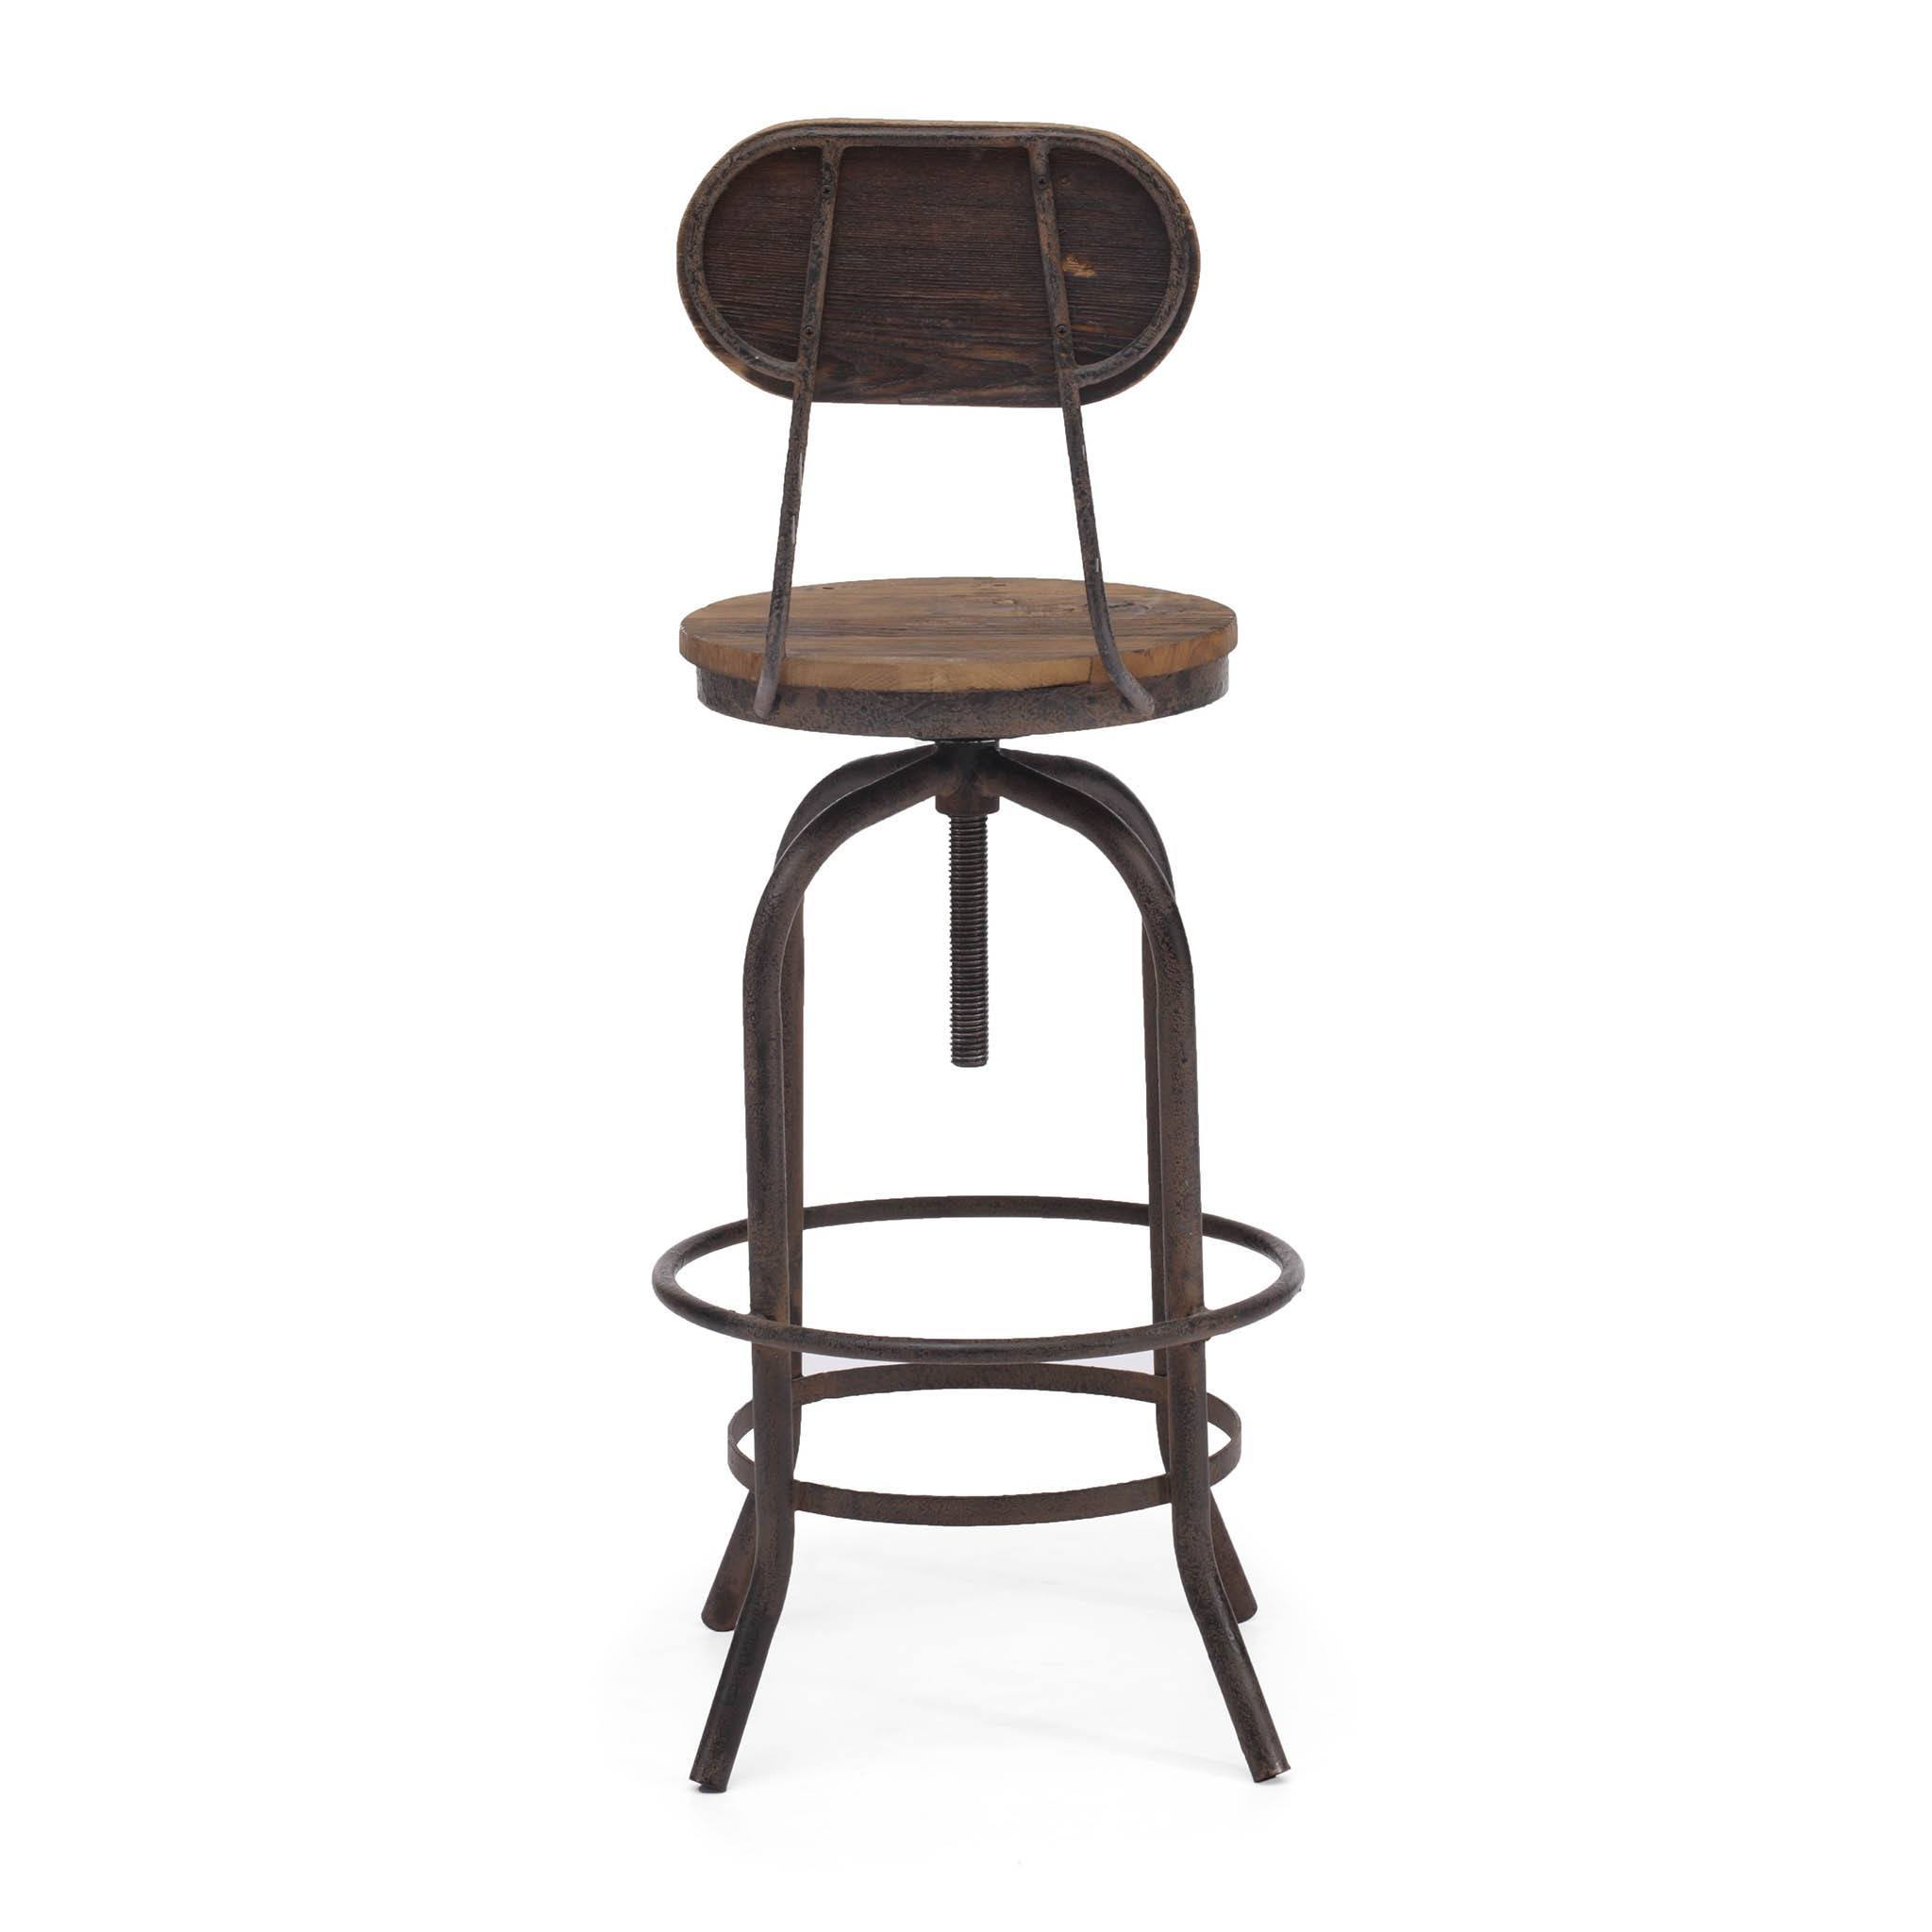 Zuo Twin Peaks Adjustable Bar Chair - Bar Stool Boutique